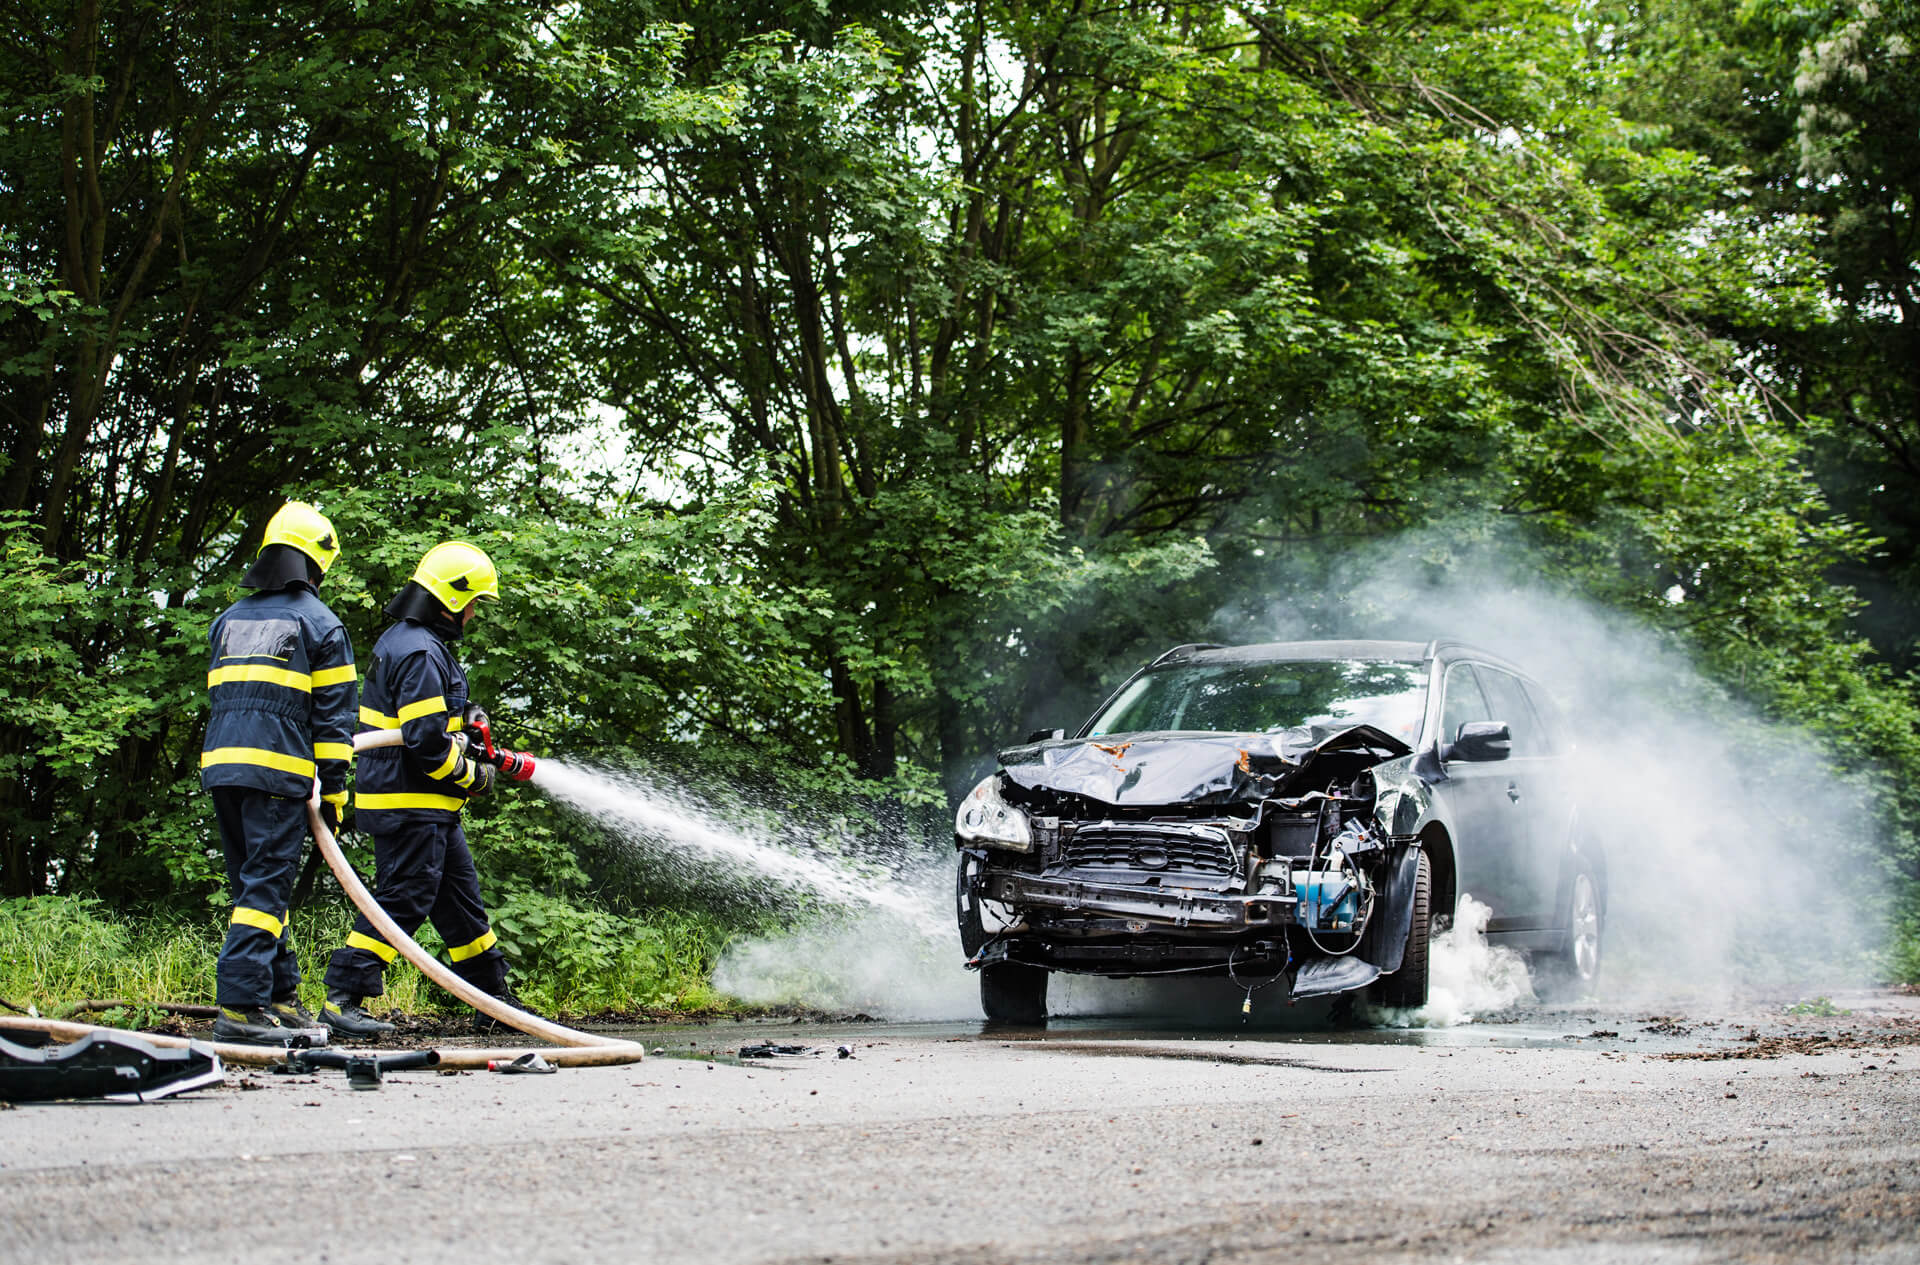 Two firefighters extinguishing a burning car after an accident